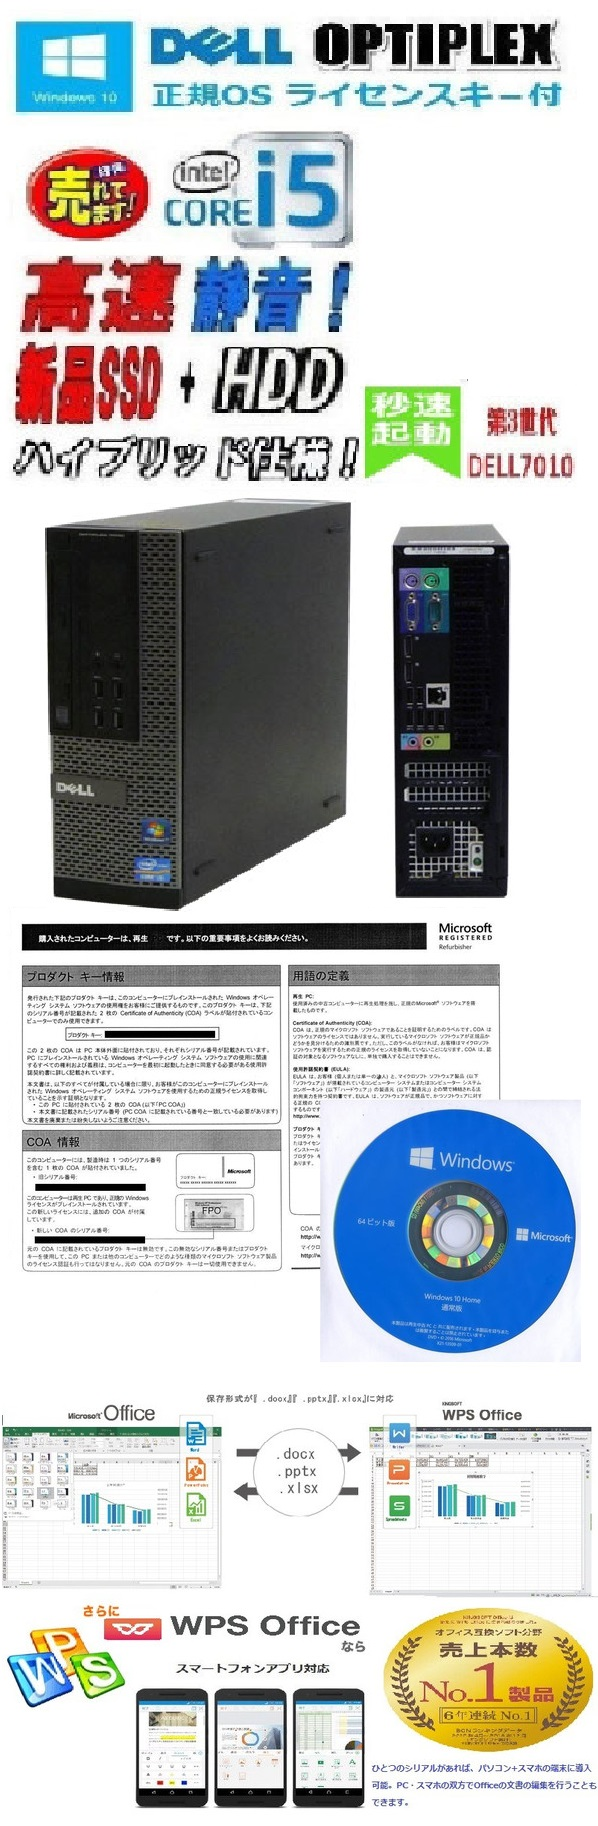 中古パソコン 正規OS Windows10 64bit Core i5 3470(3.2GHz) 爆速新品SSD120GB+HDD250GB メモリ4GB USB3.0 DVDマルチ OFFICE DELL 7010SF Kingsoft_WPS_Office 0171A